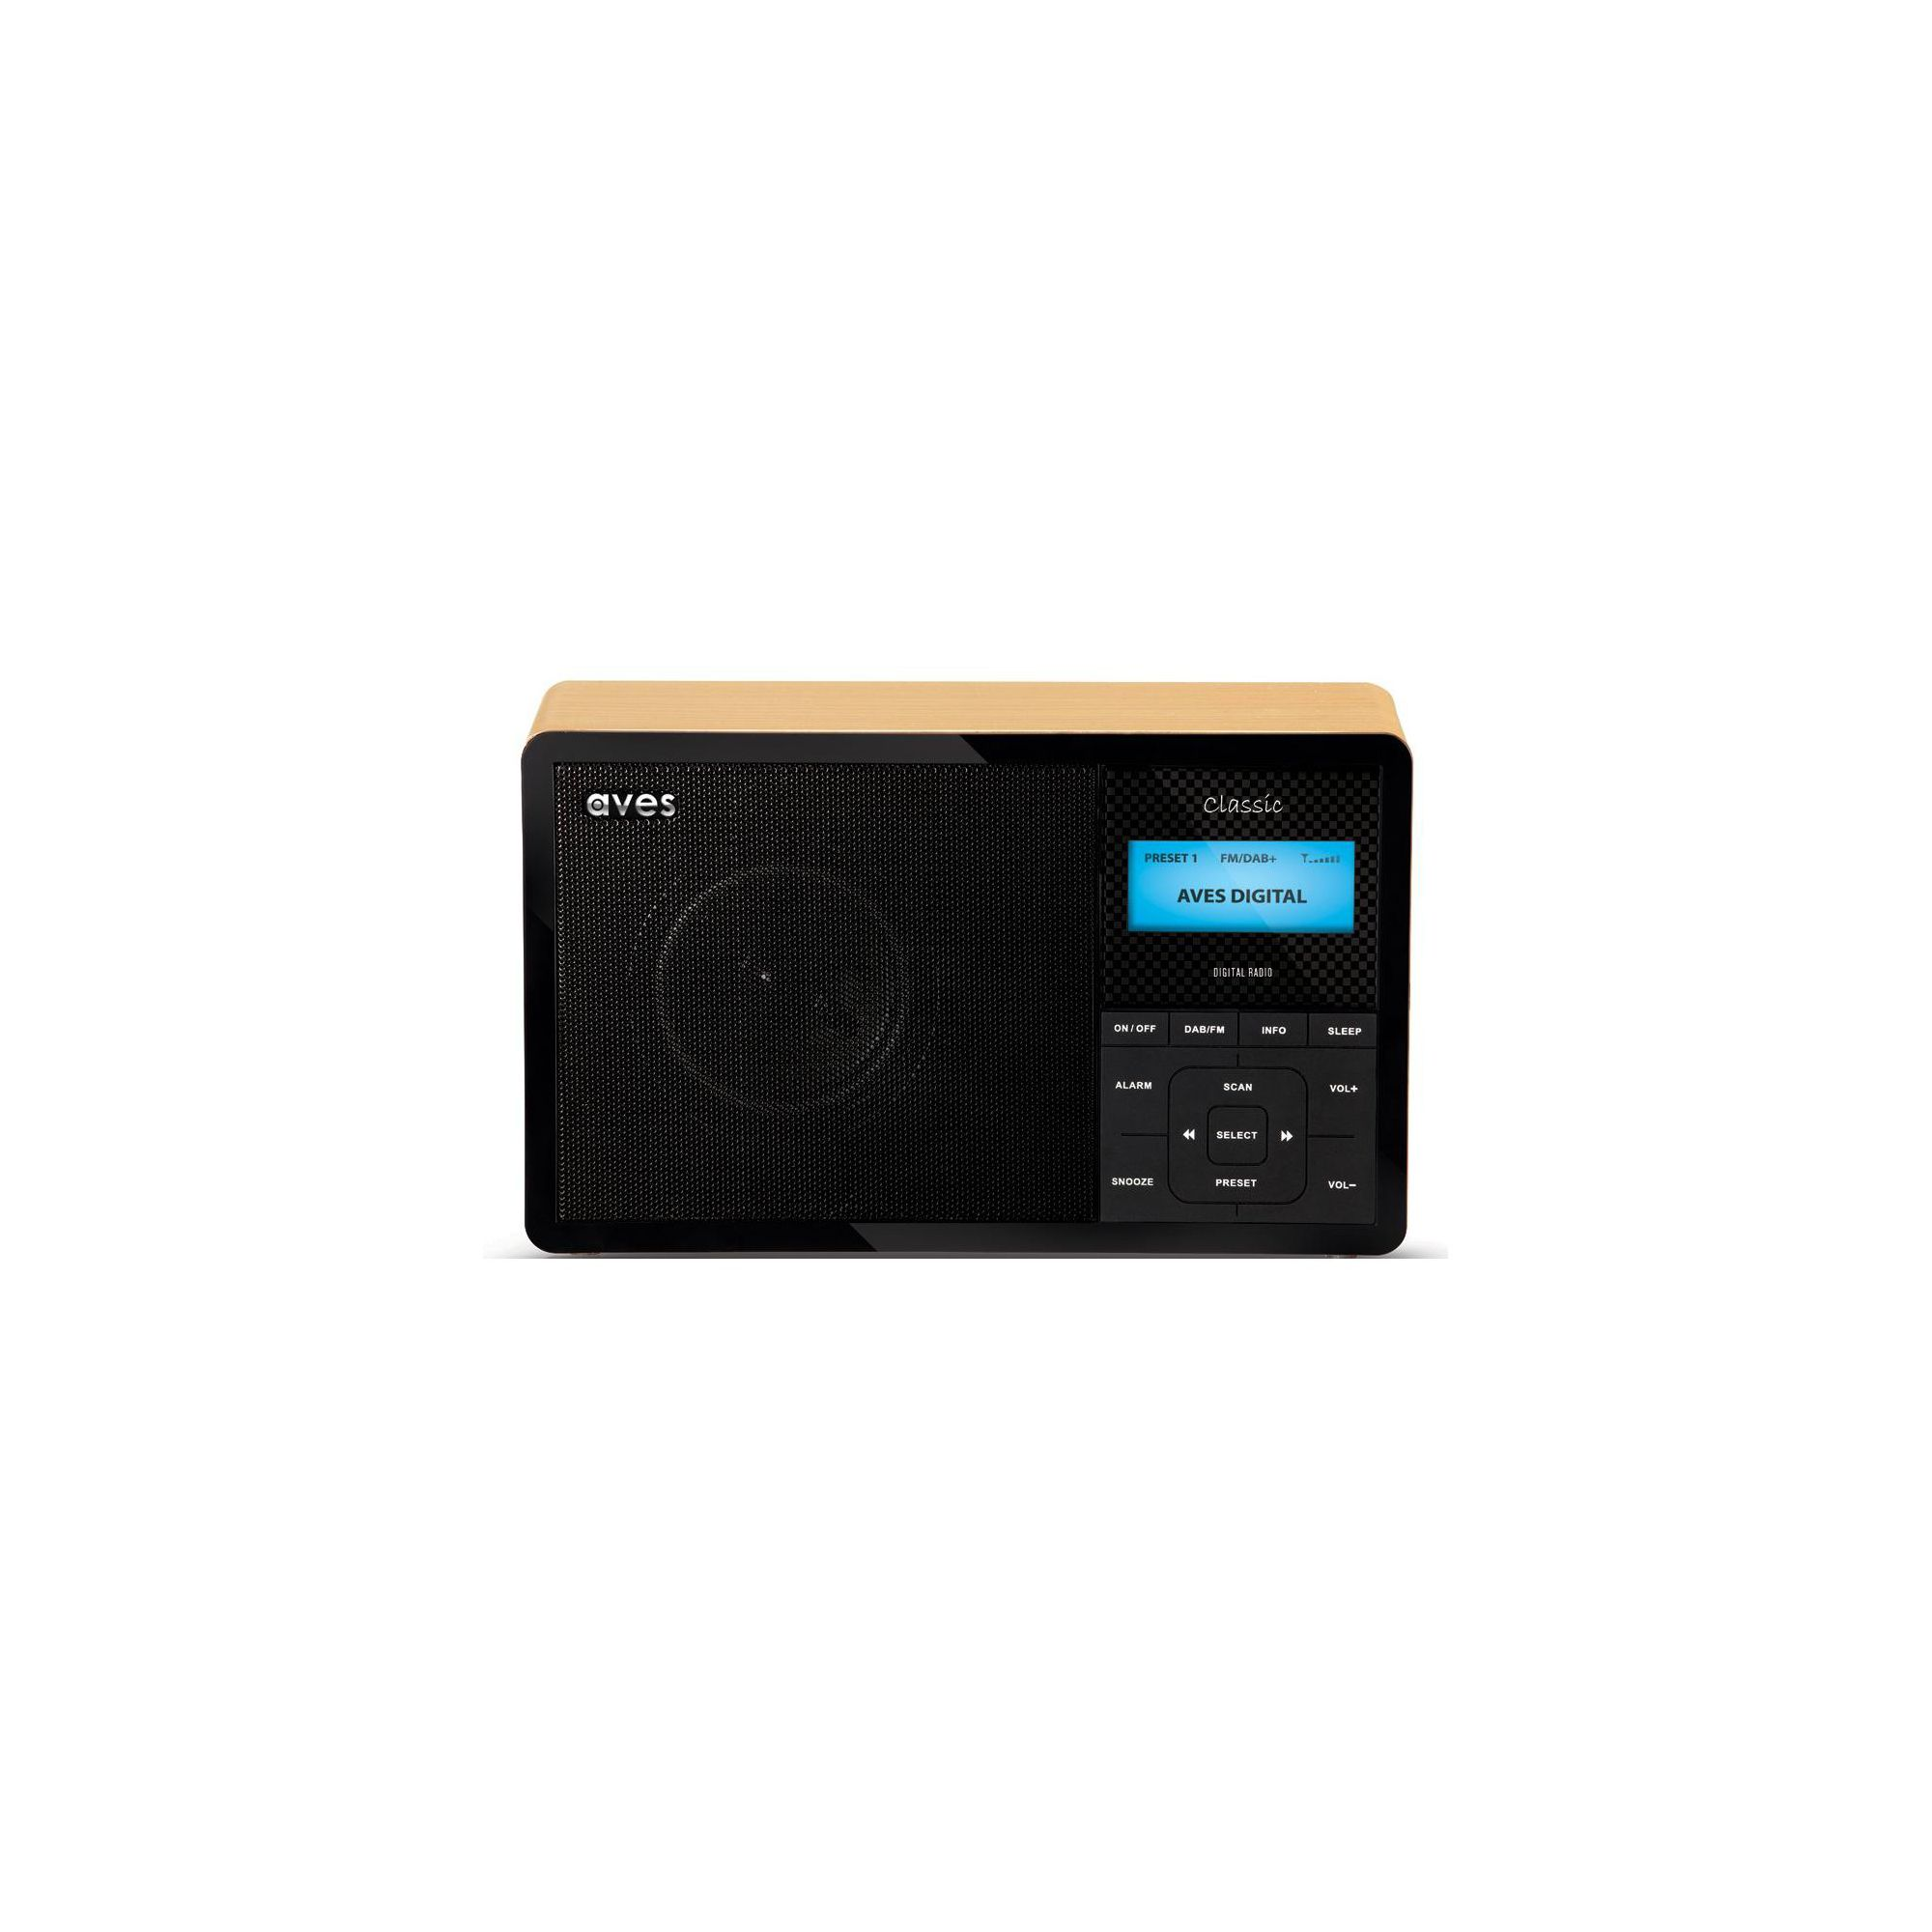 CLASSIC DAB+/FM Digital Radio with Wood Effect Finish and 20 Presets.